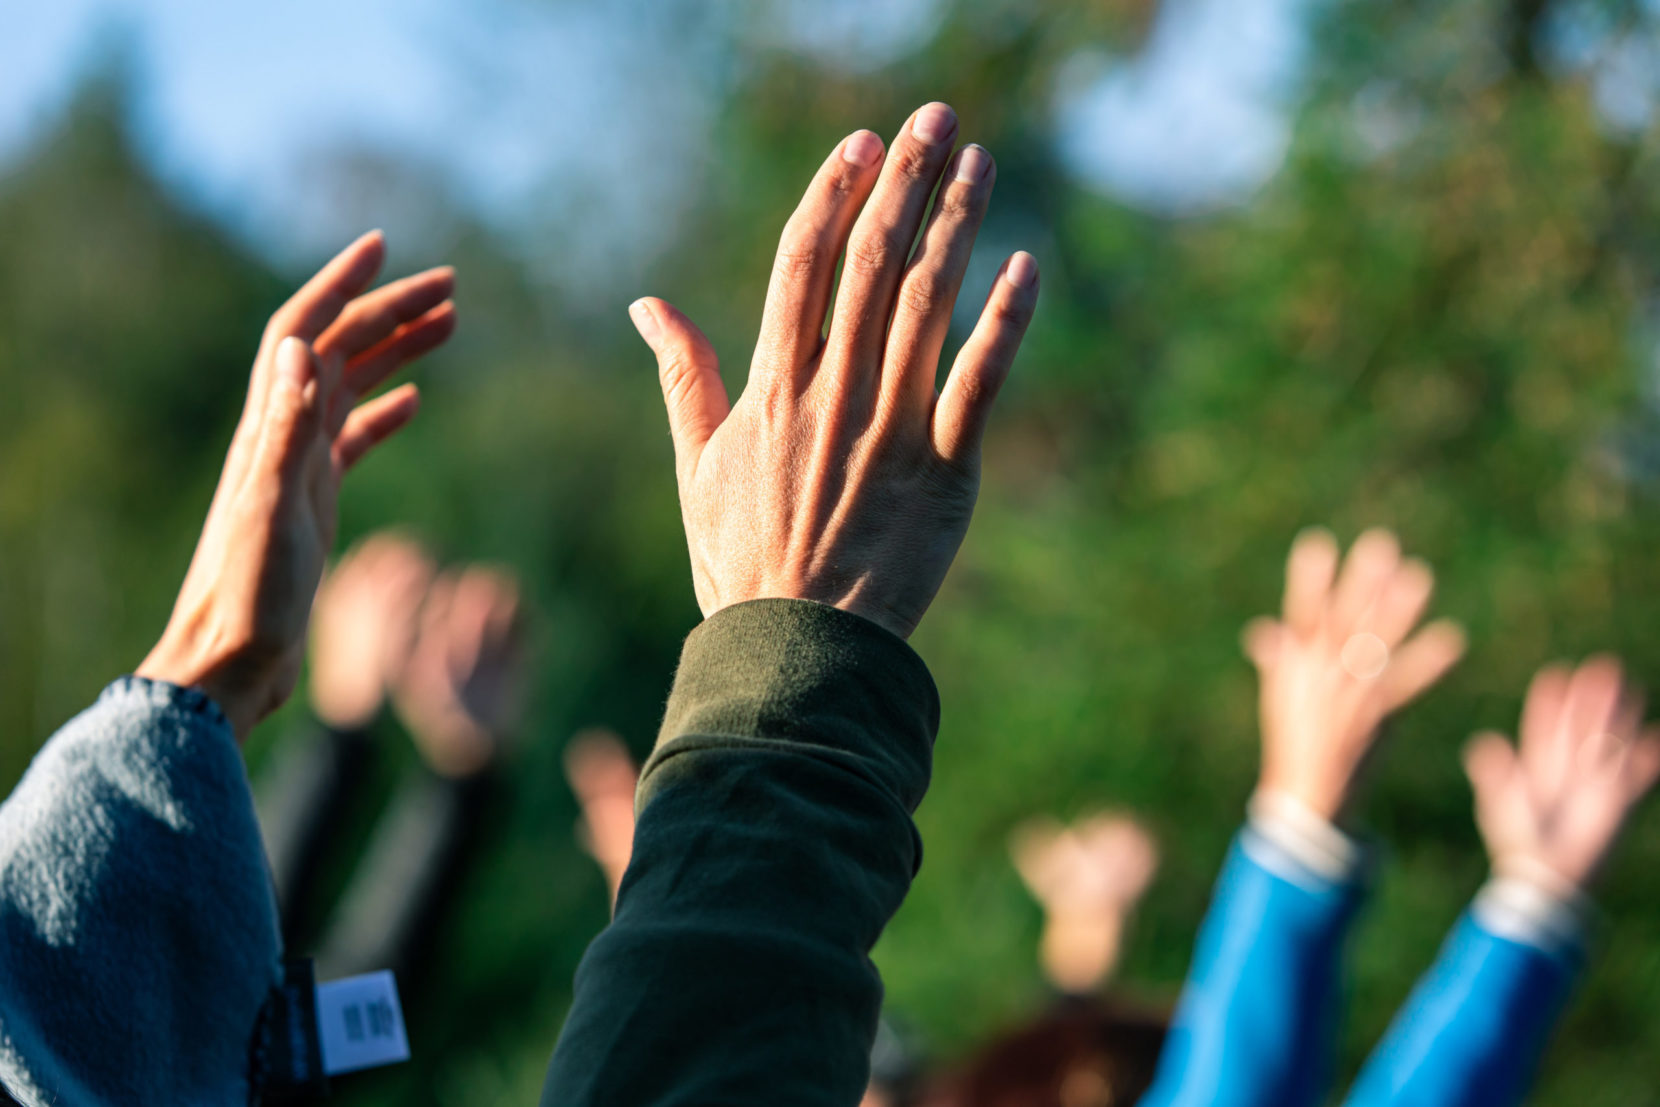 Group of people putting their hands up in the air.